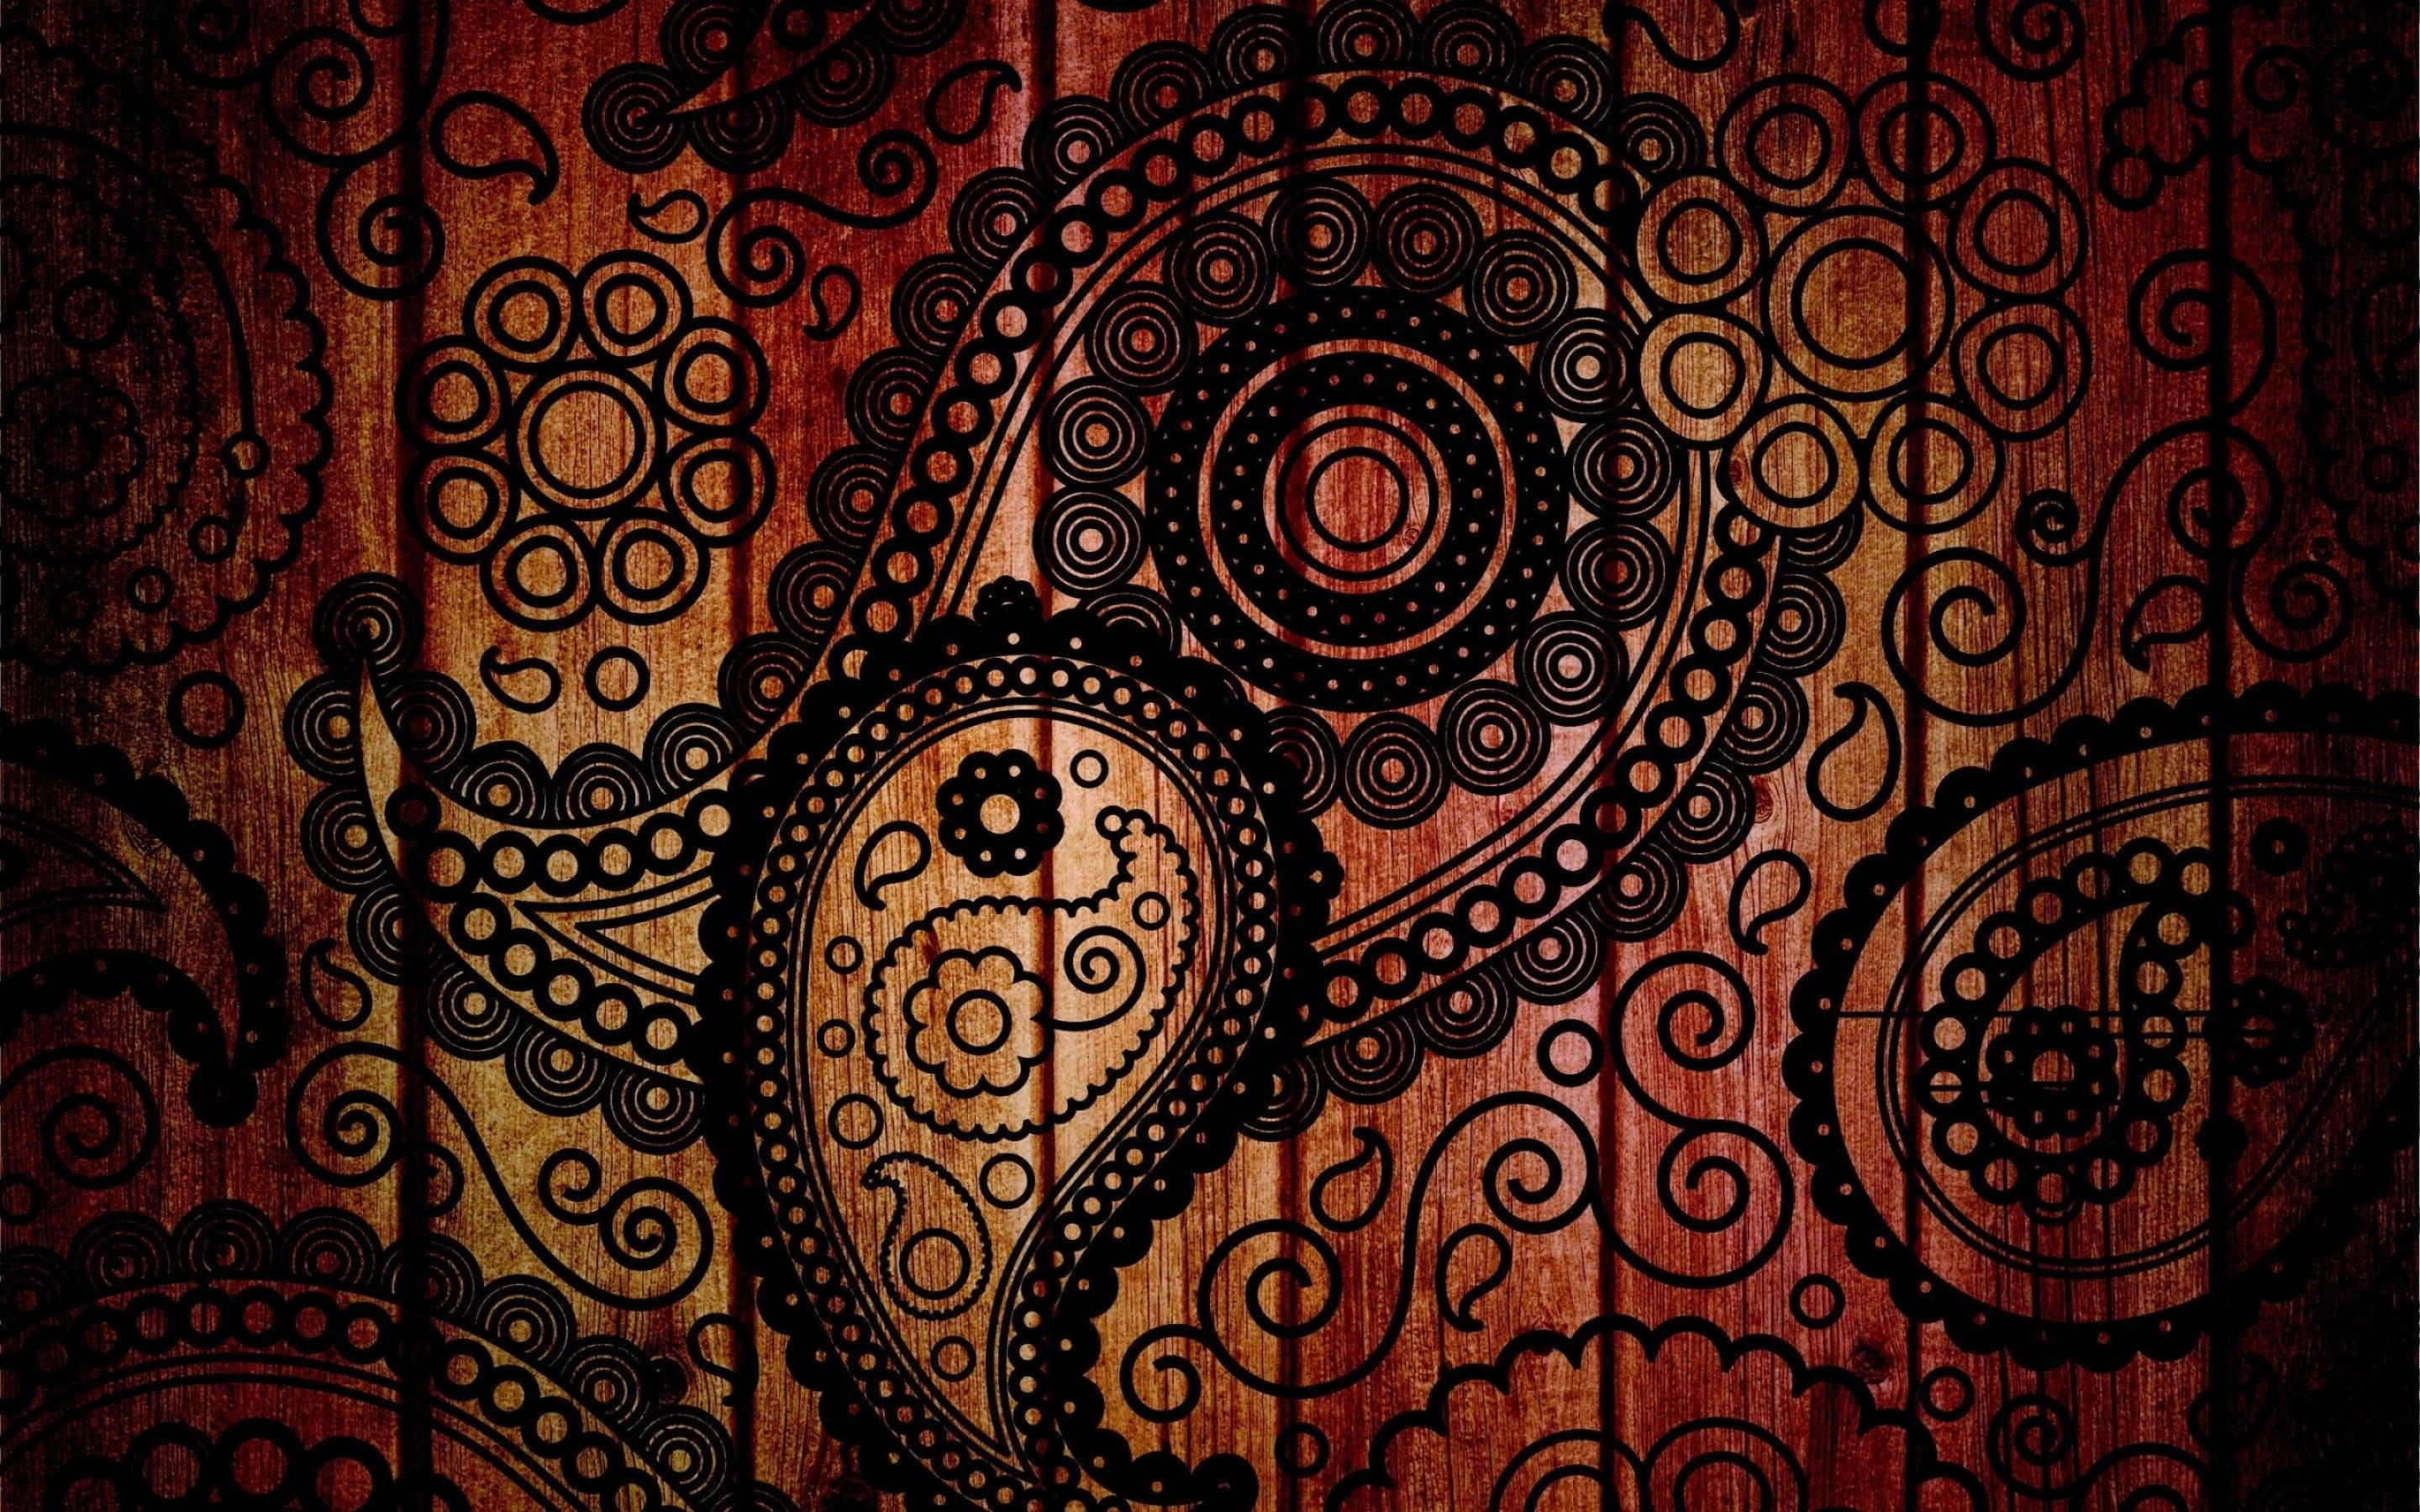 Paisley Wallpaper ·① Download Free Stunning HD Wallpapers